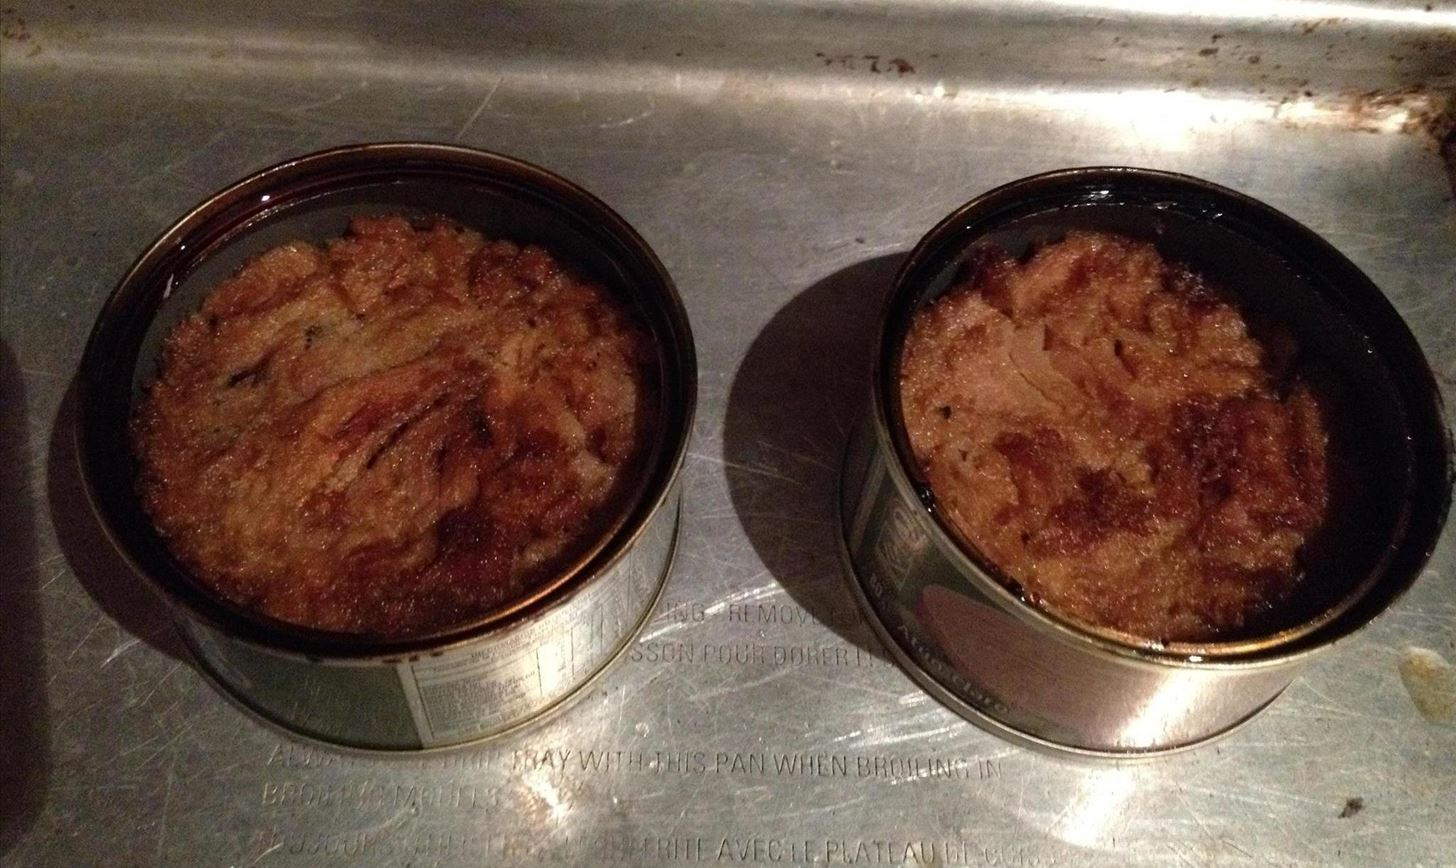 How to cook tuna with toilet paper food hacks wonderhowto for How to cook tuna fish